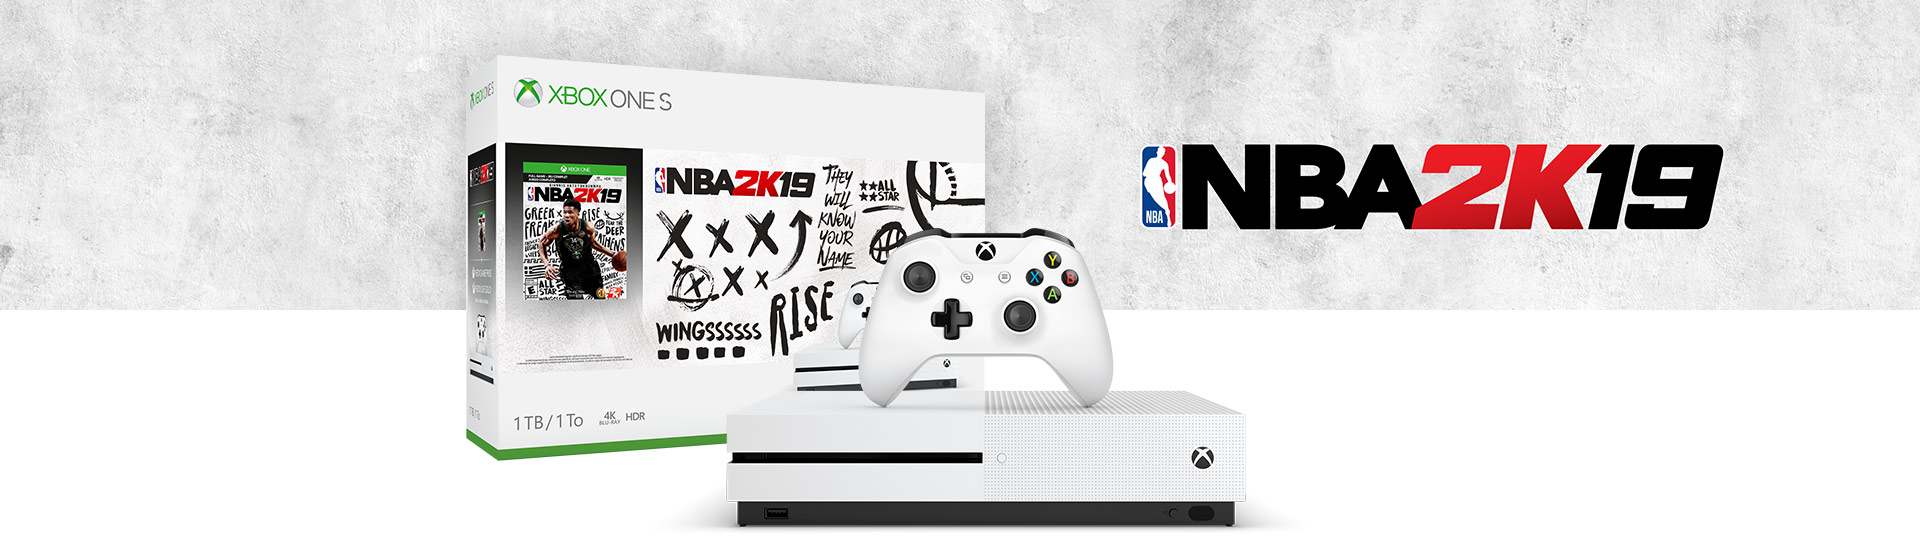 Xbox One S NBA 2K19 Bundle (1TB) | Xbox